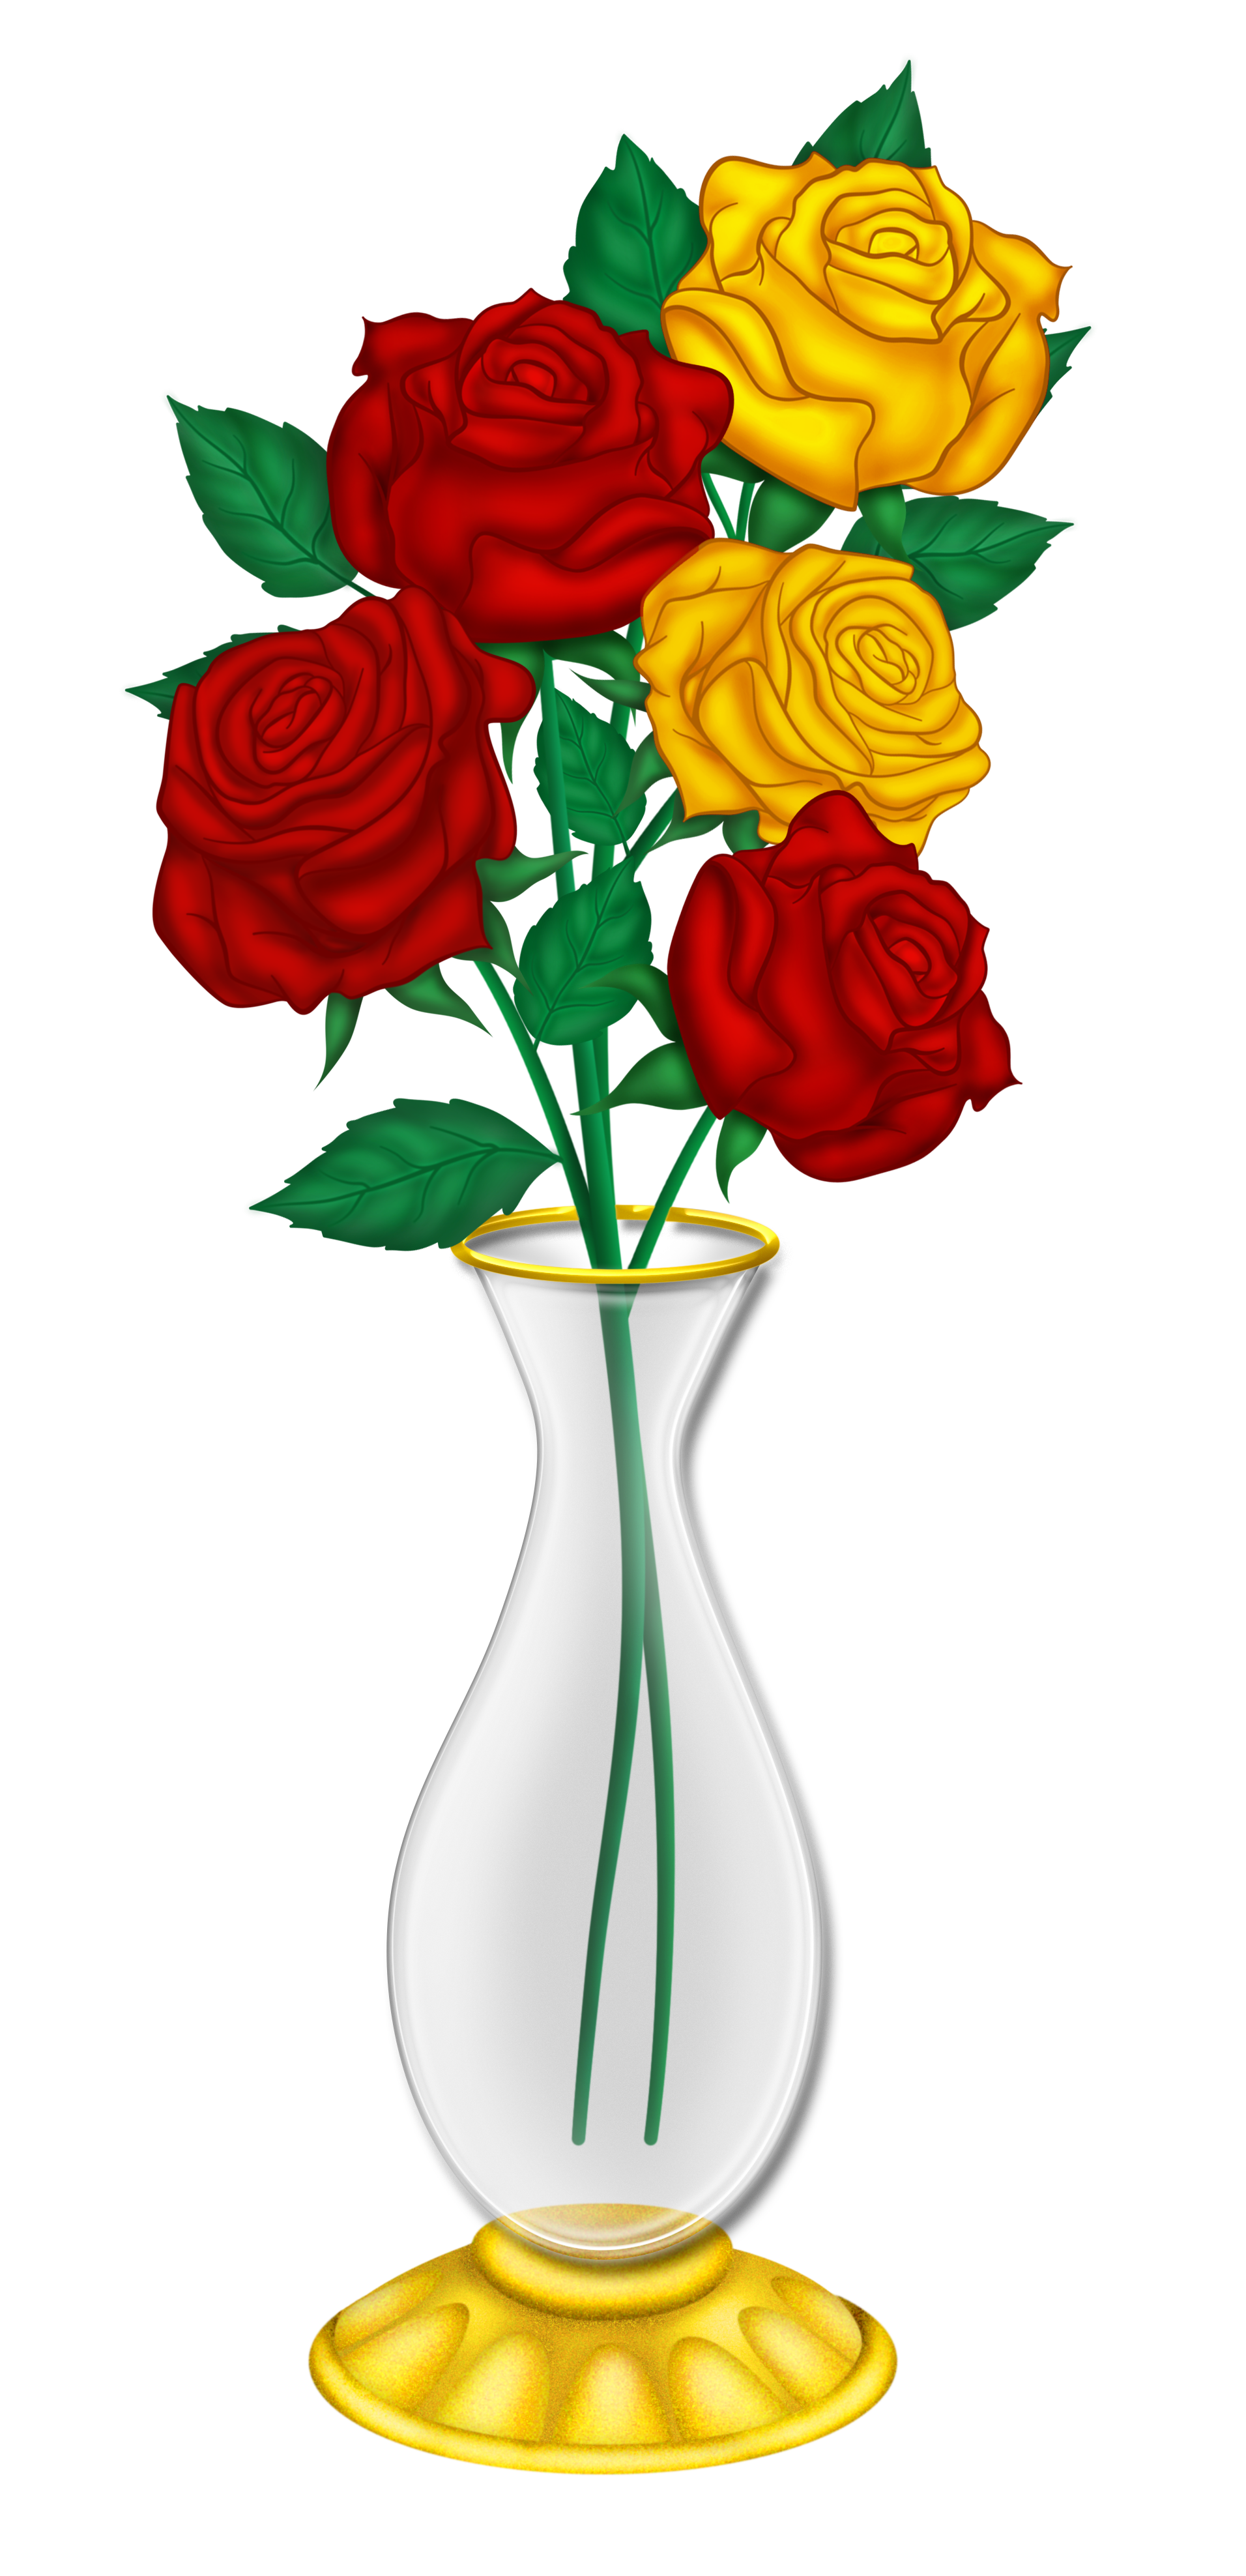 1912x3952 Beautiful Vase With Red And Yellow Roses Png Pictureu200b Gallery